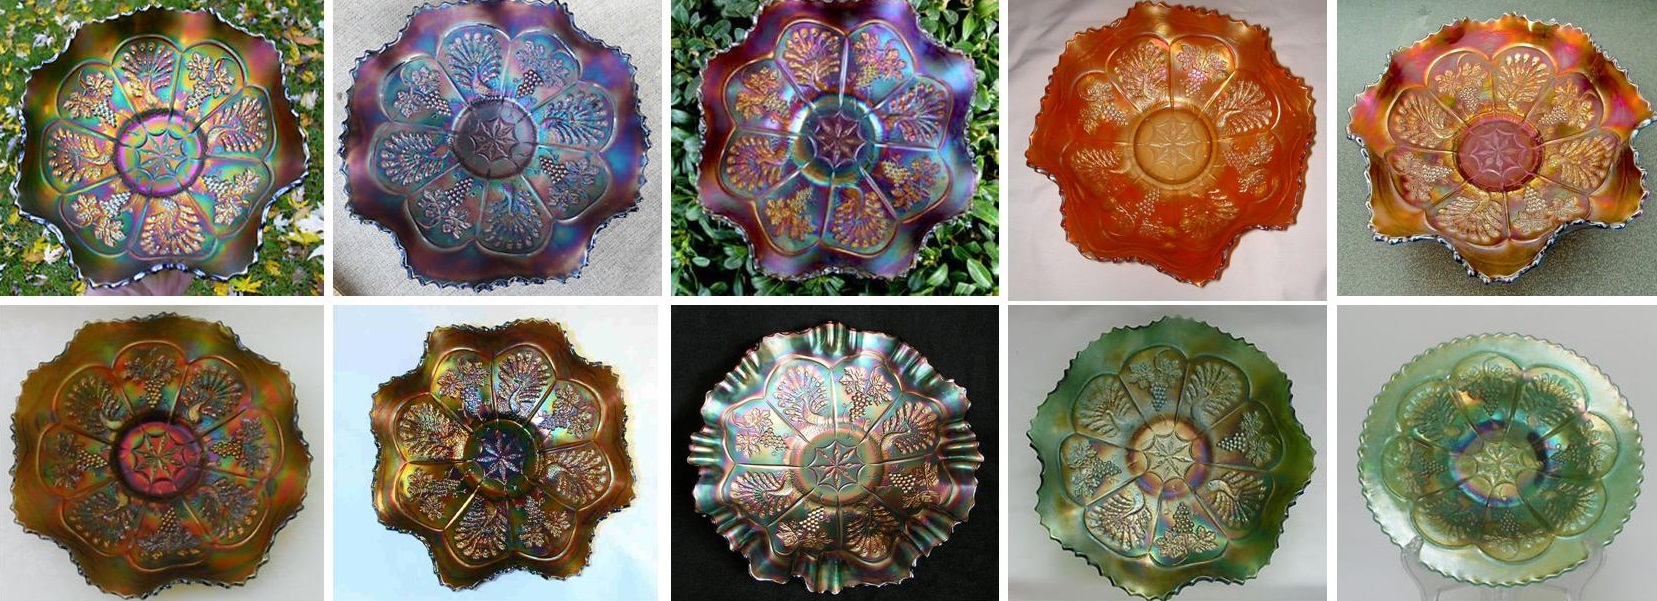 All of these bowls are in the same pattern, Peacock and Grape. You can see all the variations, not only in color, but also the variations in iridescence. No two pieces of green carnival glass, for example, will have the exact same iridescence. Each piece is one of a kind and unique - so it is up to the collector to decide which pieces they like best and what tone of iridescence they find attractive..